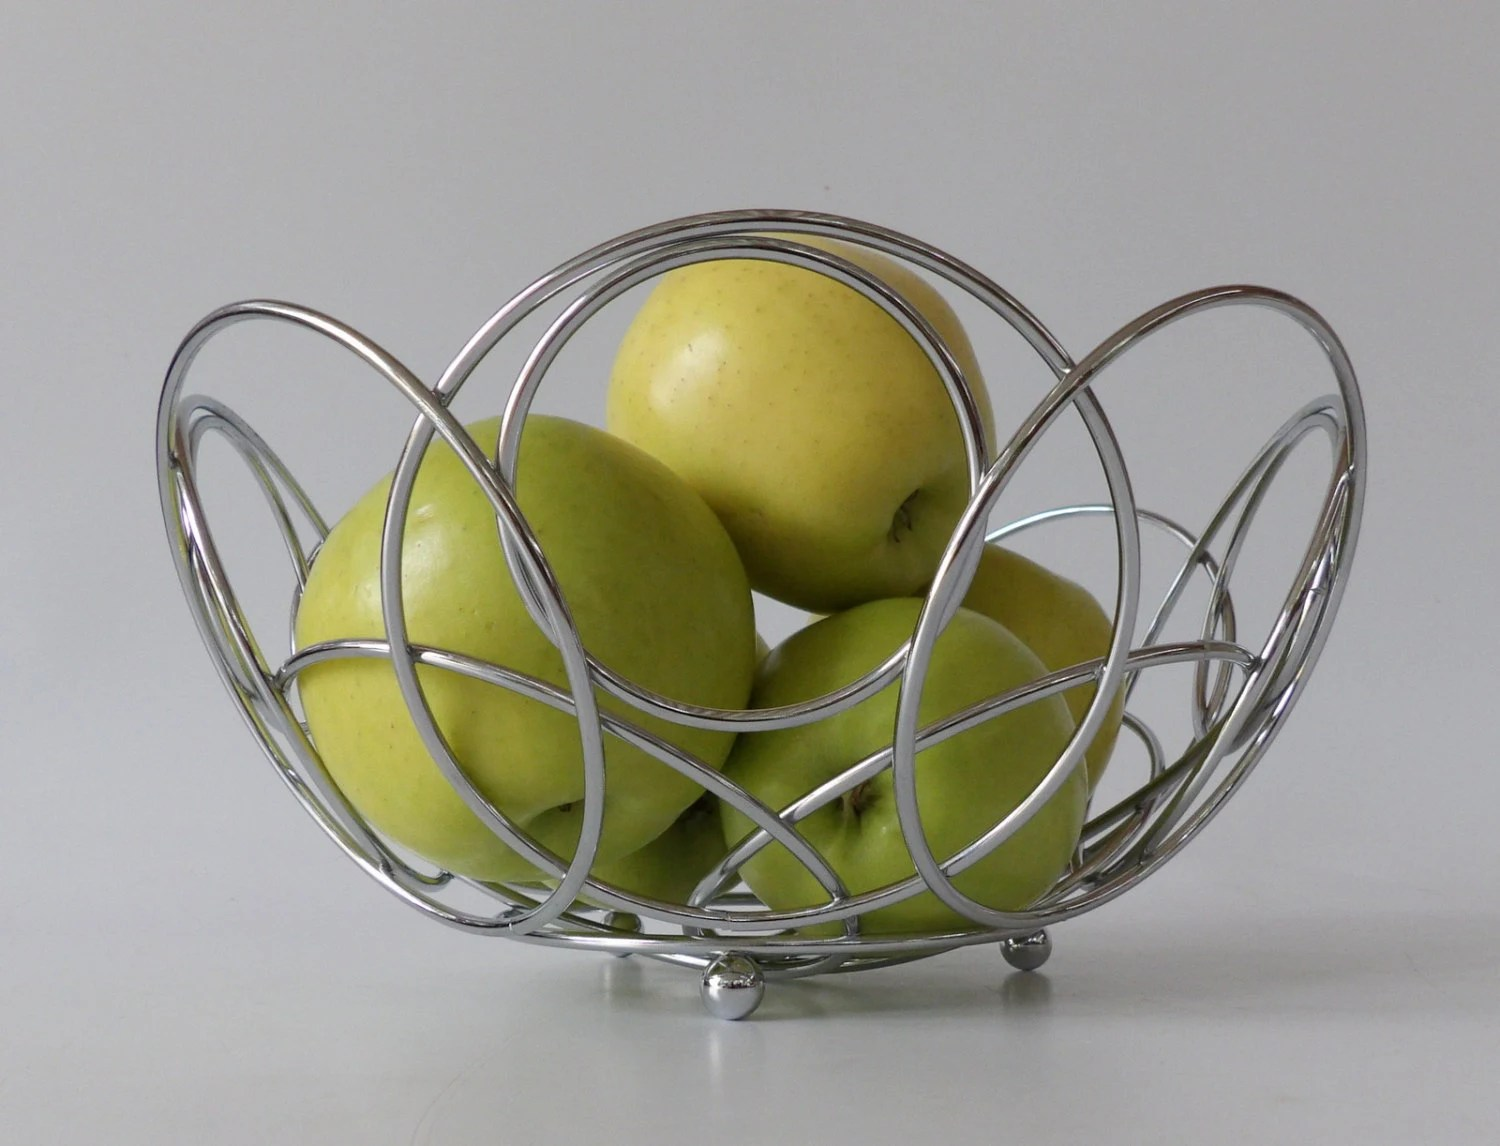 Chrome Decorative Bowl Chrome Fruit Basket Bowl Cosmic Retro Low By